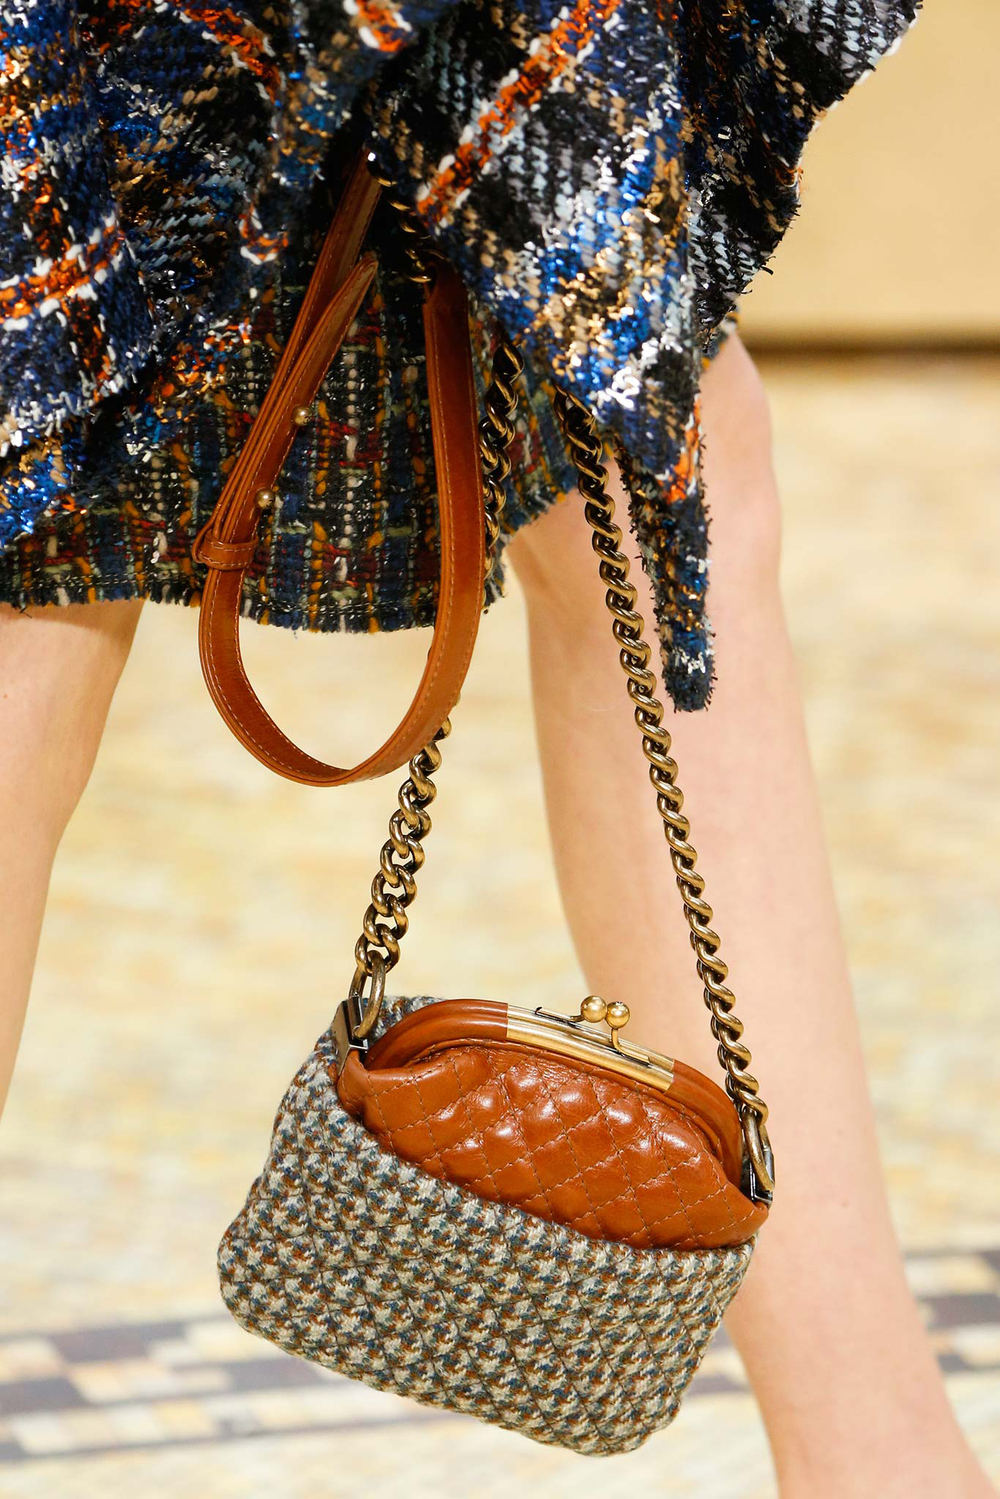 16-best-runway-accessories-fall-2015-chanel.jpg